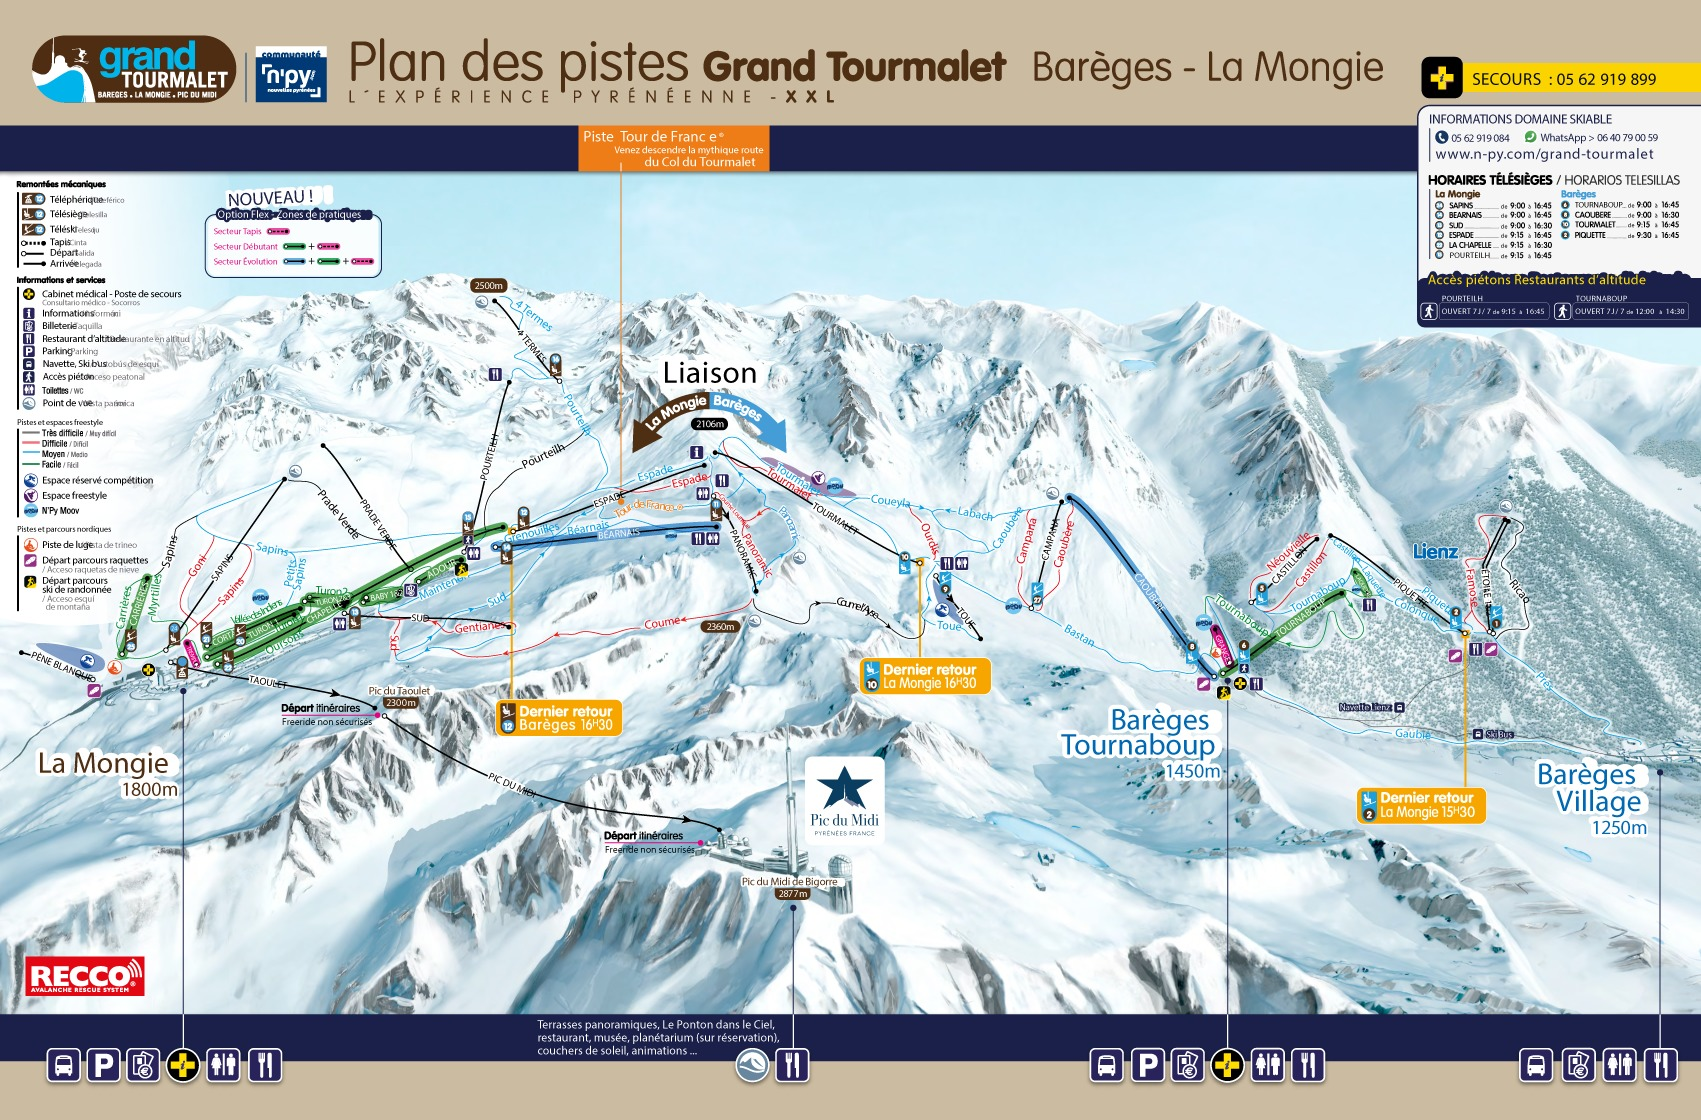 Bareges & La Mongie Piste / Trail Map